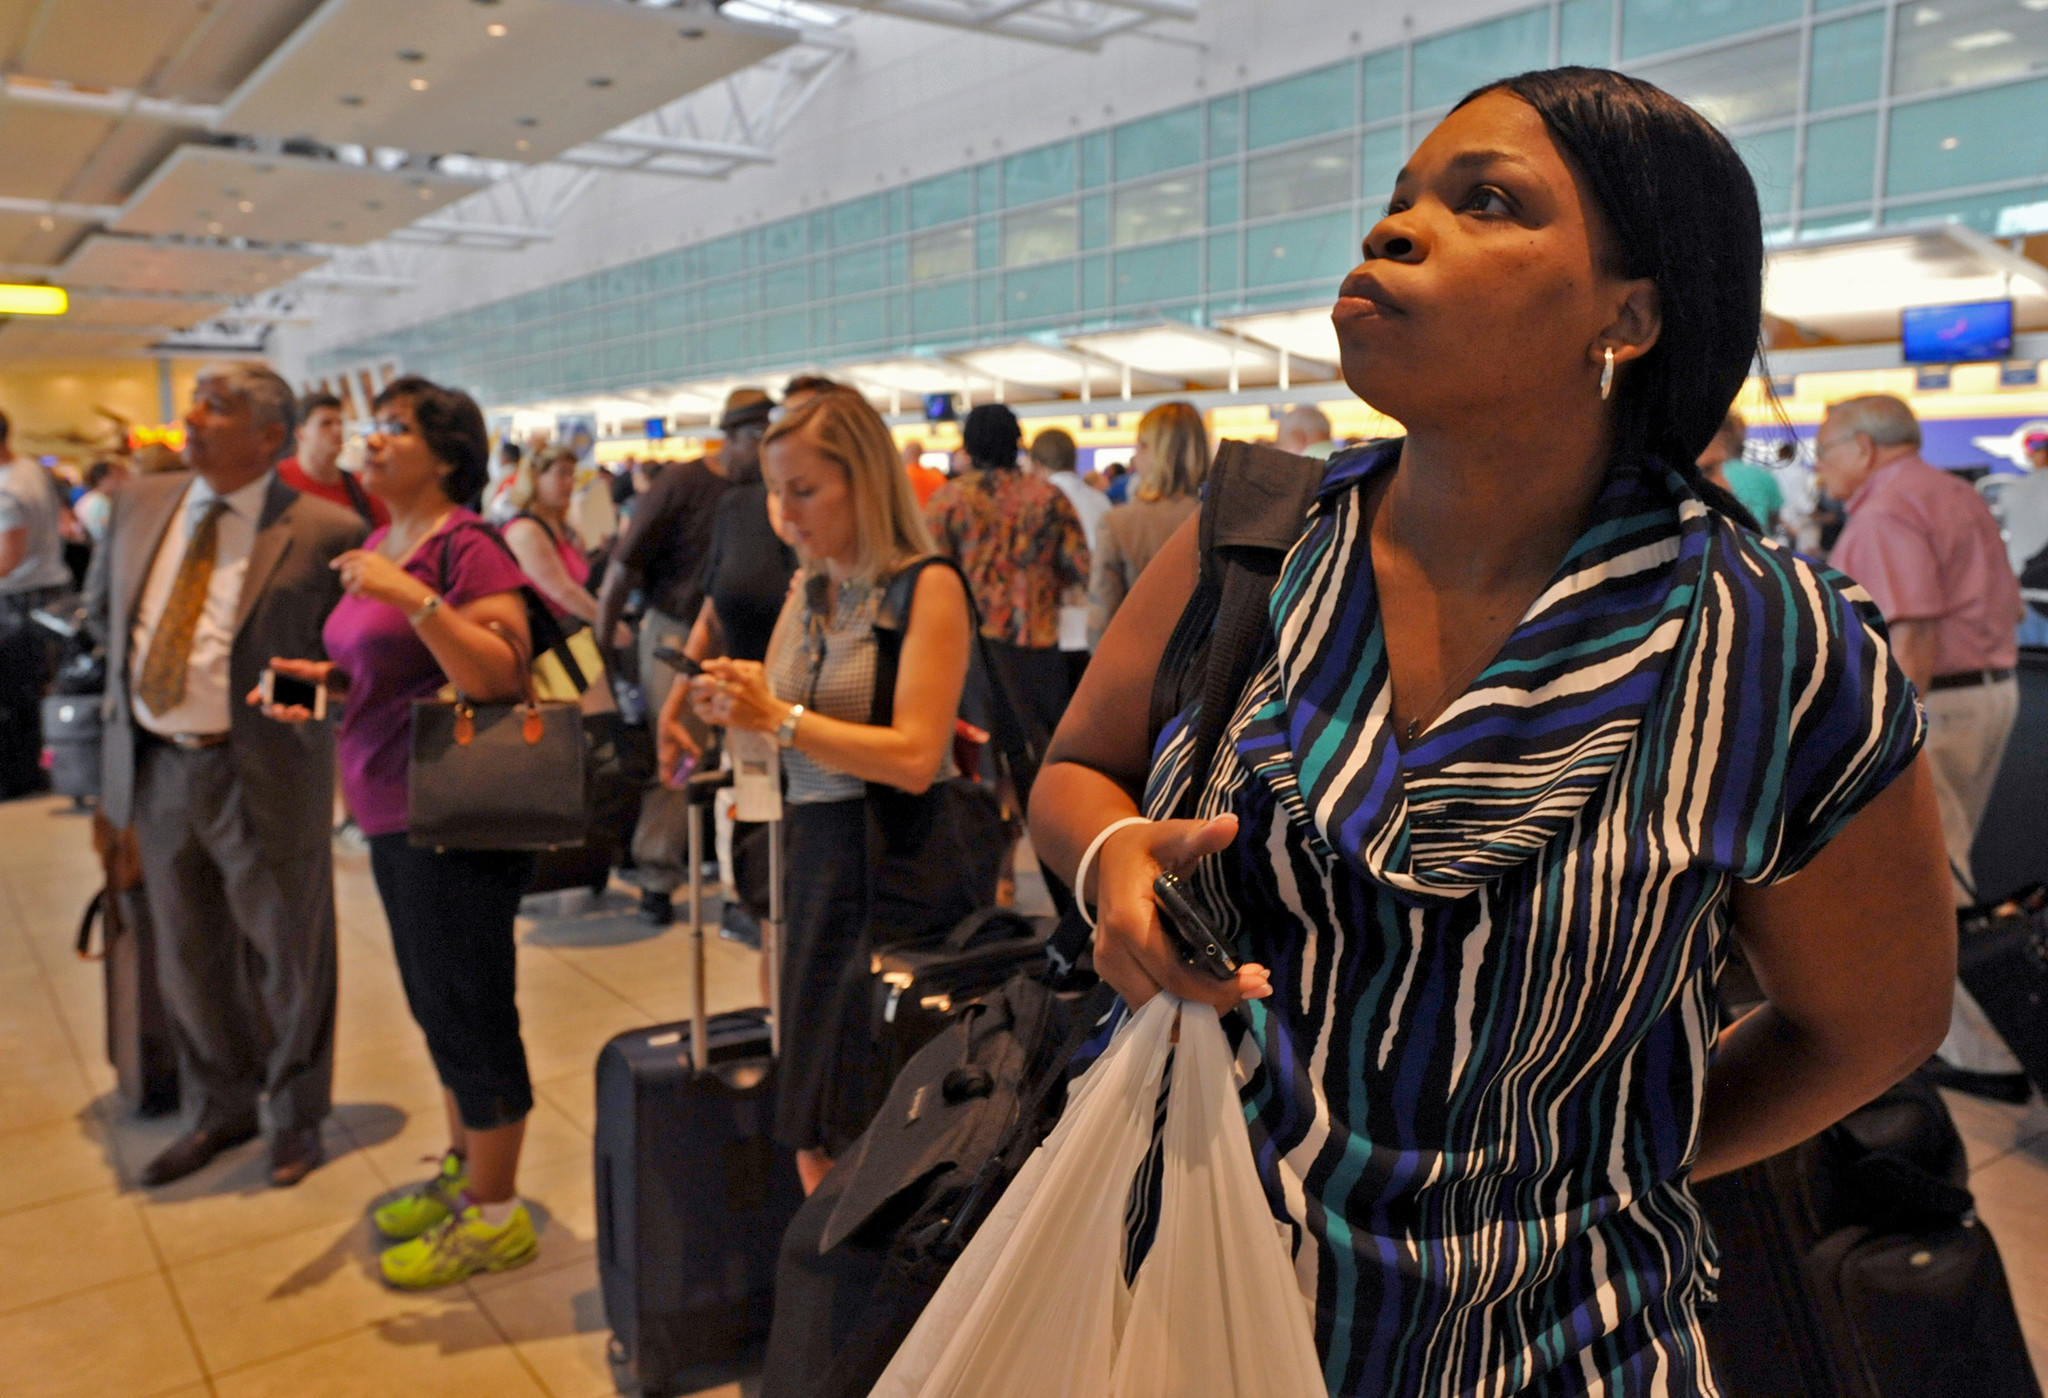 Nakia McGhee of Houston checks the departure board after her 4:45pm flight on Southwest Airlines was cancelled because a severe thunder storm in June.